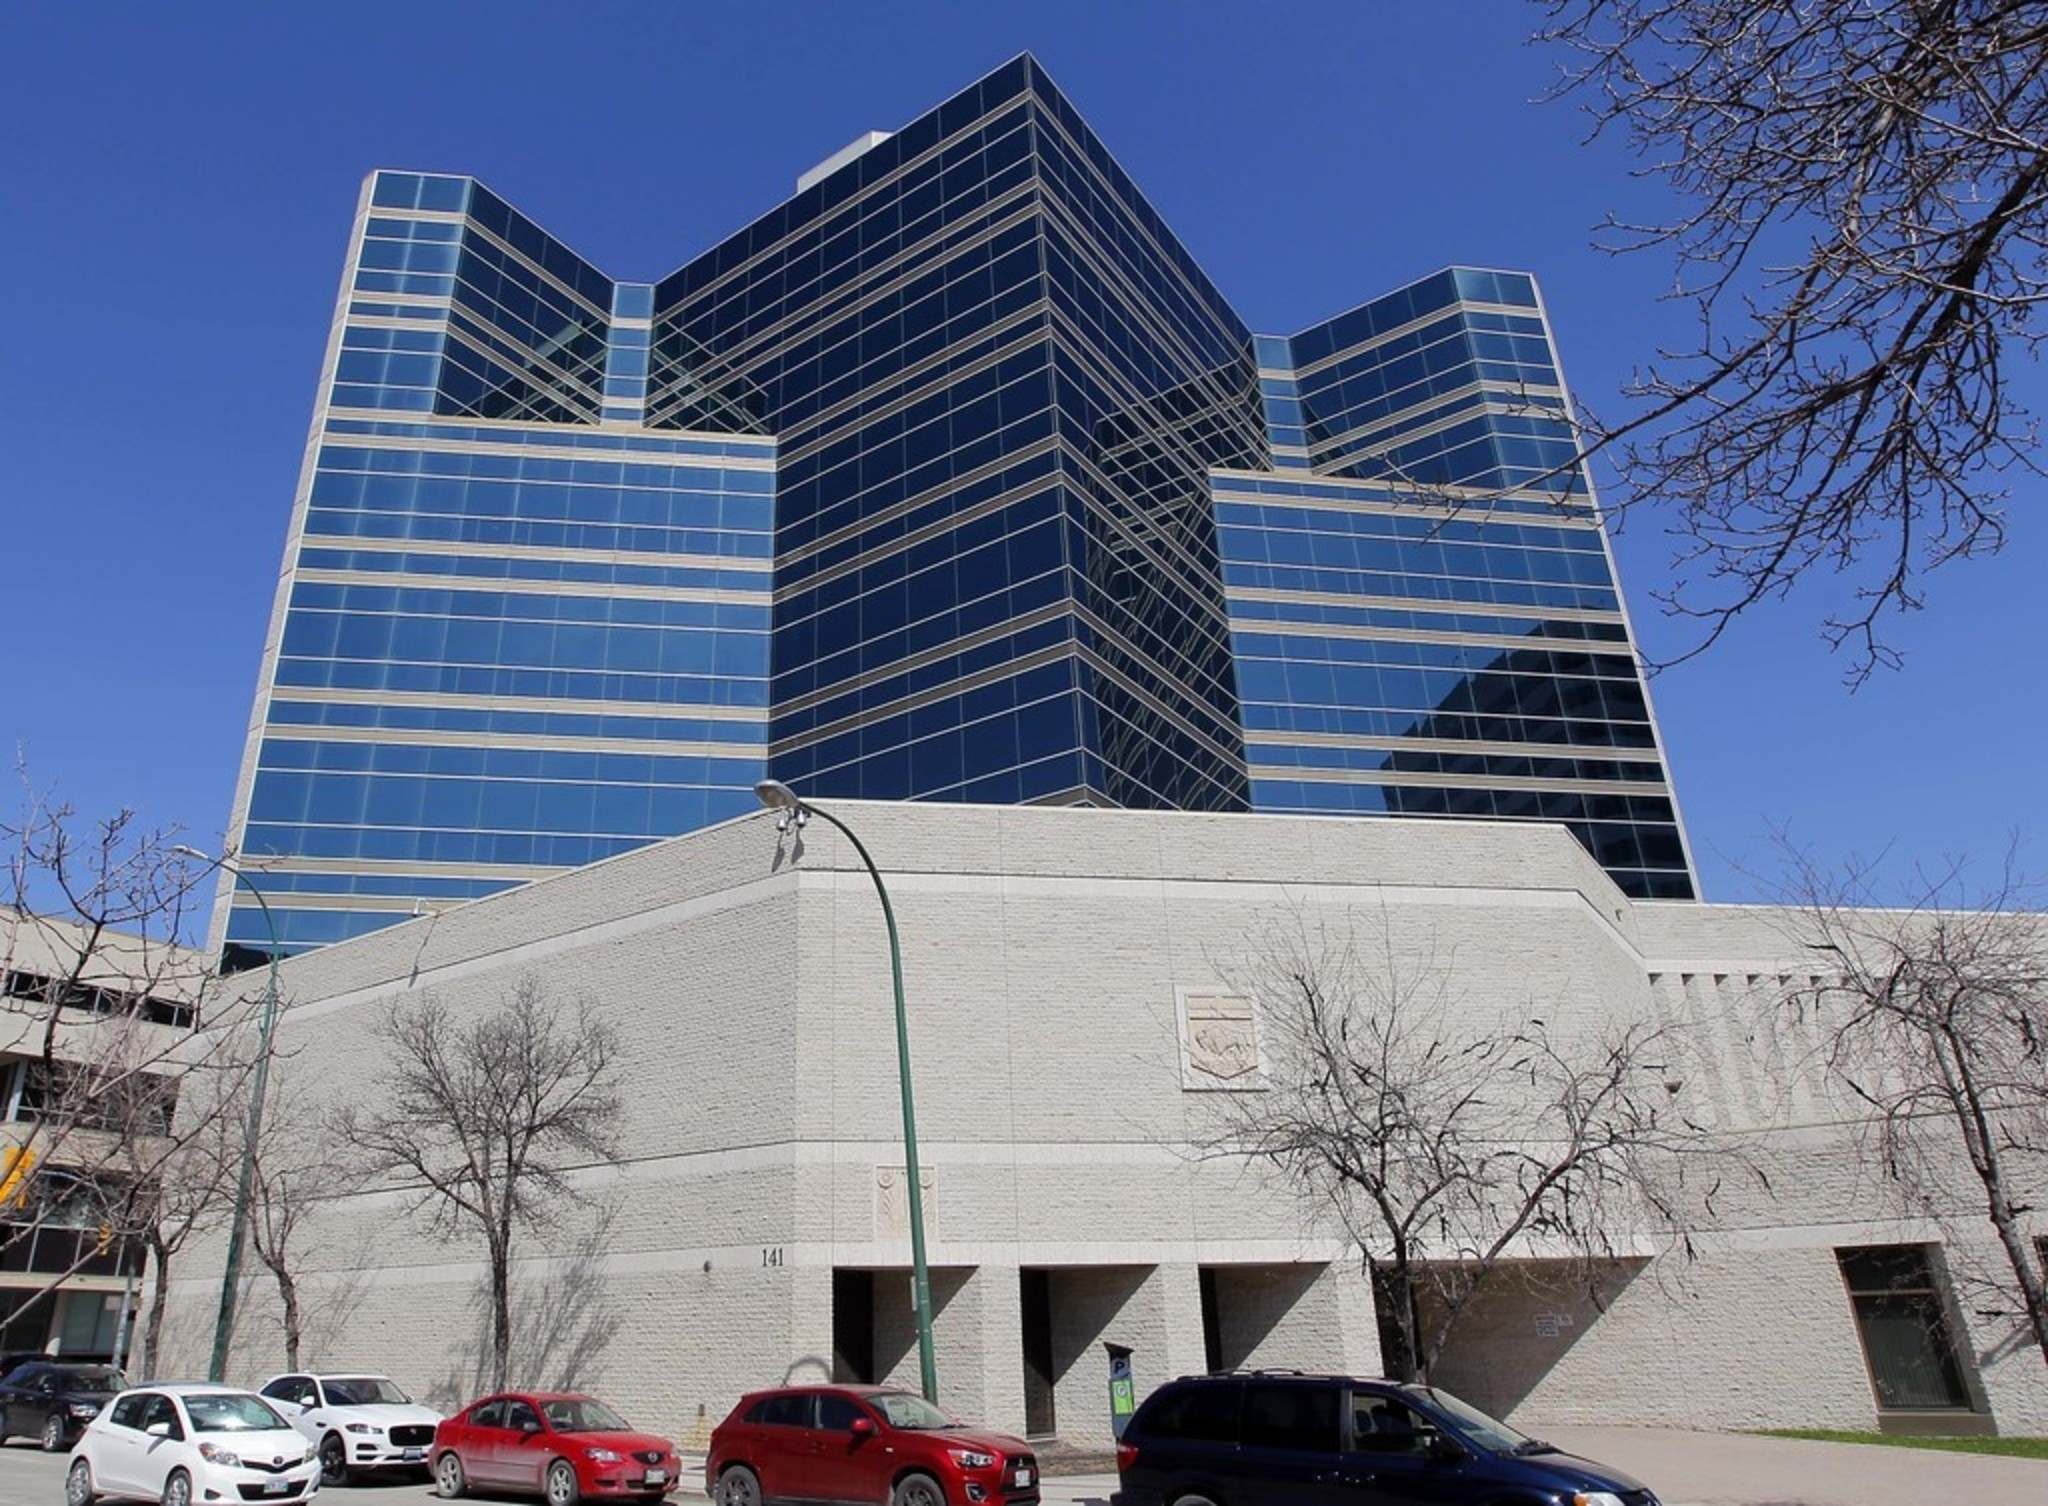 All new admissions to the province's adult and youth correctional facilities will be funnelled through the Winnipeg Remand Centre. (Boris Minkevich / Winnipeg Free Press files)</p>